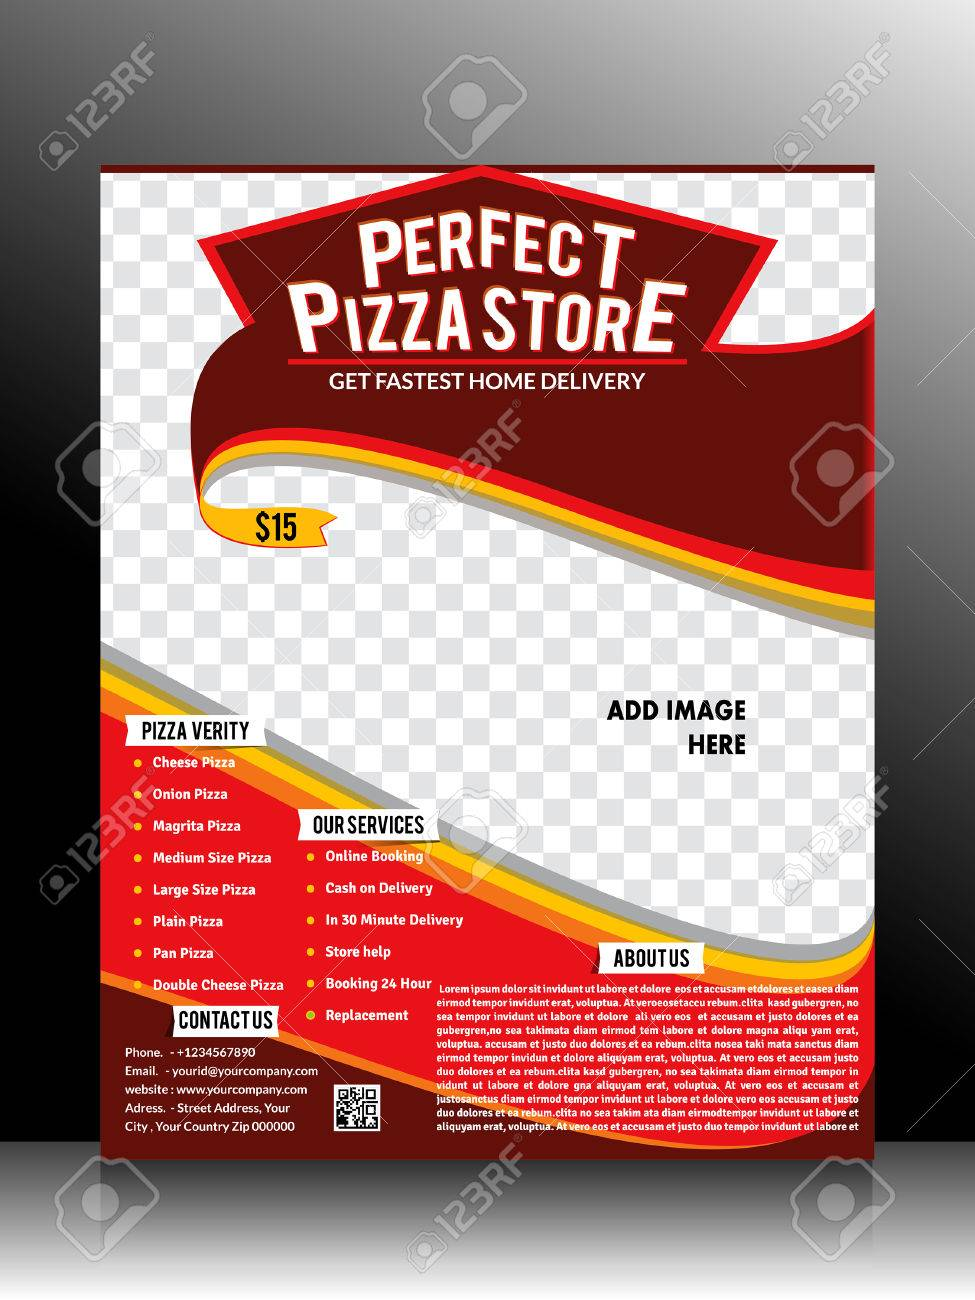 perfect pizza store flyer template vector illustration royalty free